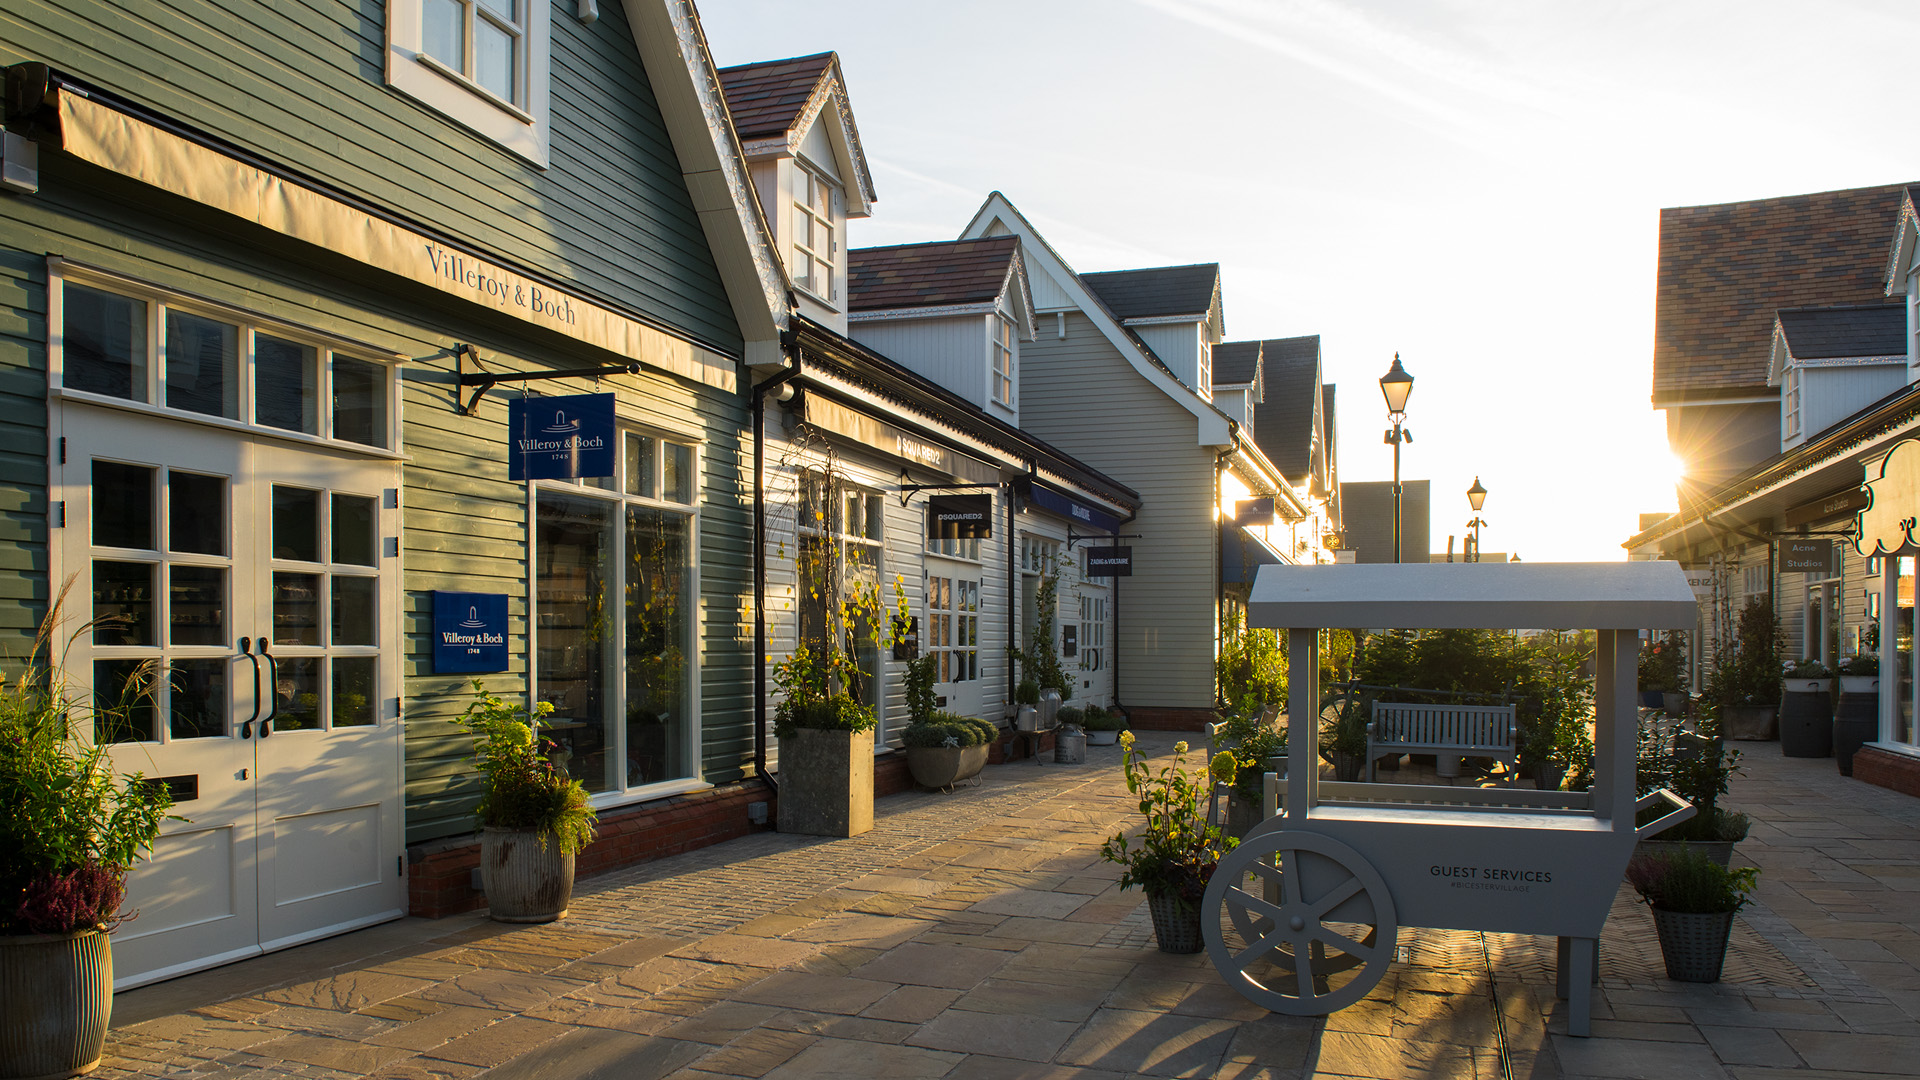 Bicester Village About Us Image Main